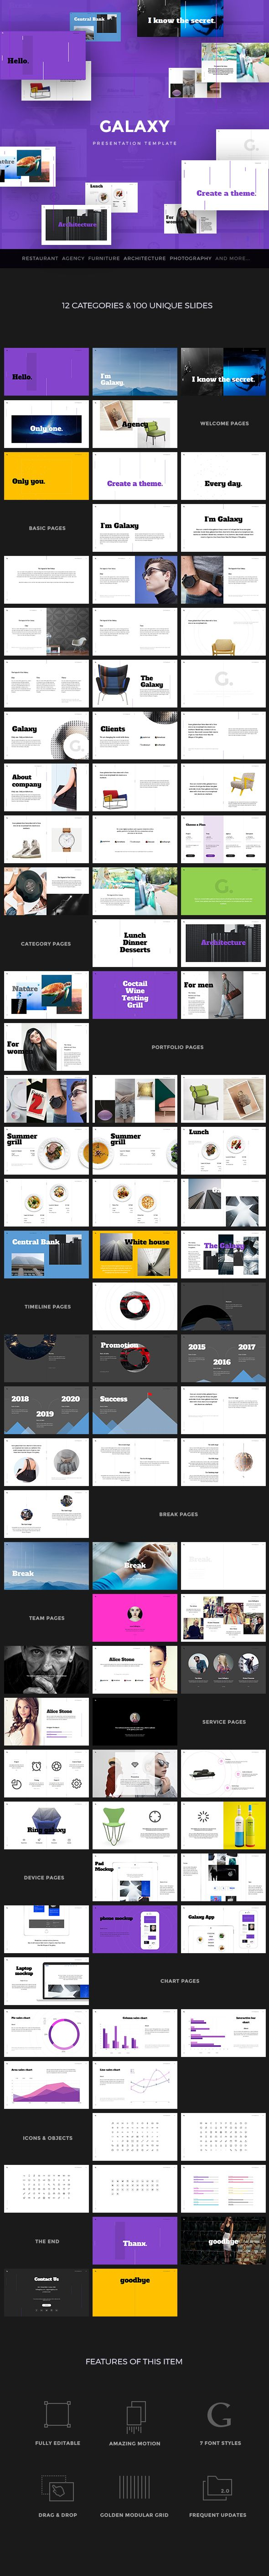 Eva powerpoint template pinterest powerpoint presentation galaxy powerpoint presentation template download here httpgraphicriveritemgalaxy powerpoint presentation15733970refksioks toneelgroepblik Images